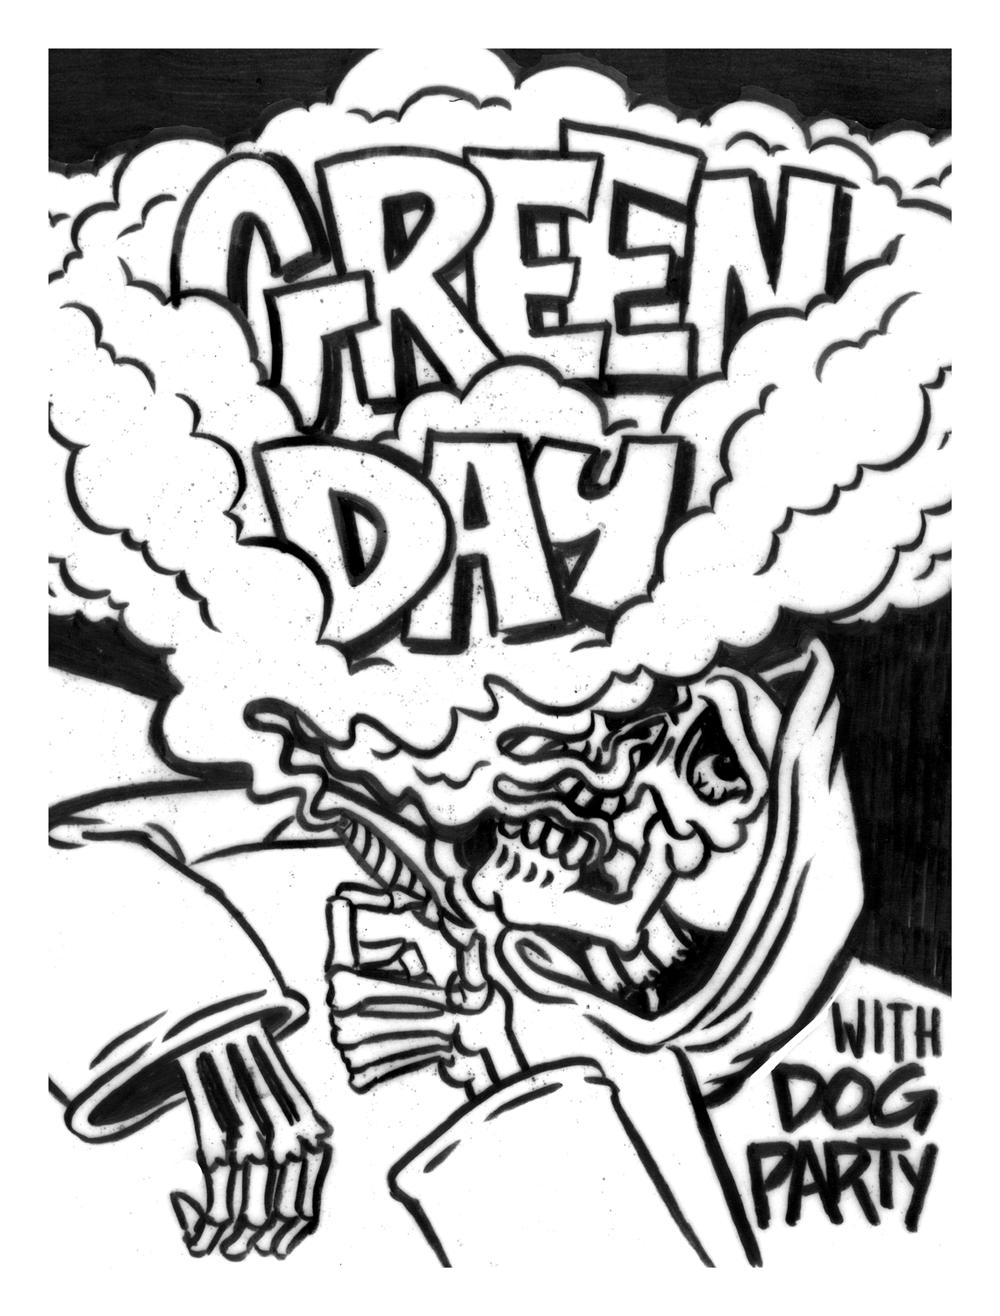 GREENDAY_Poster_Sketch_No2.png